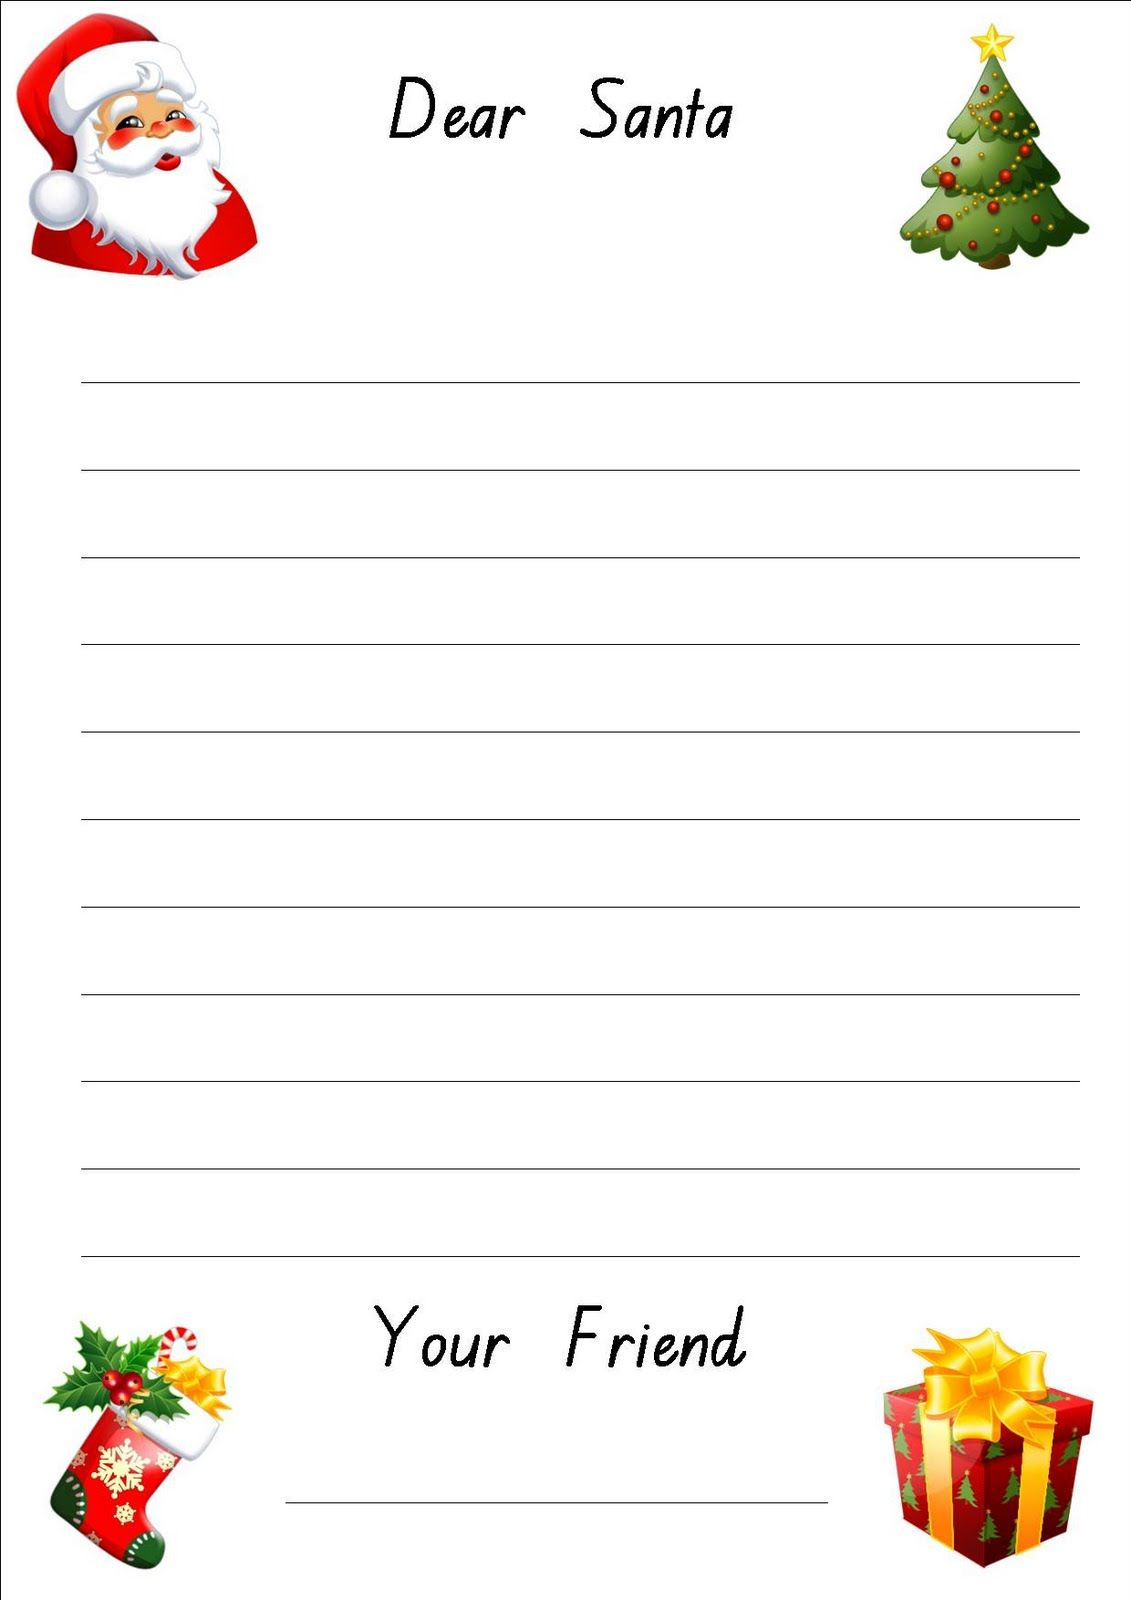 Lined Christmas Paper For Letters | Do Your Kids Write Letters To - Free Printable Santa Letter Paper